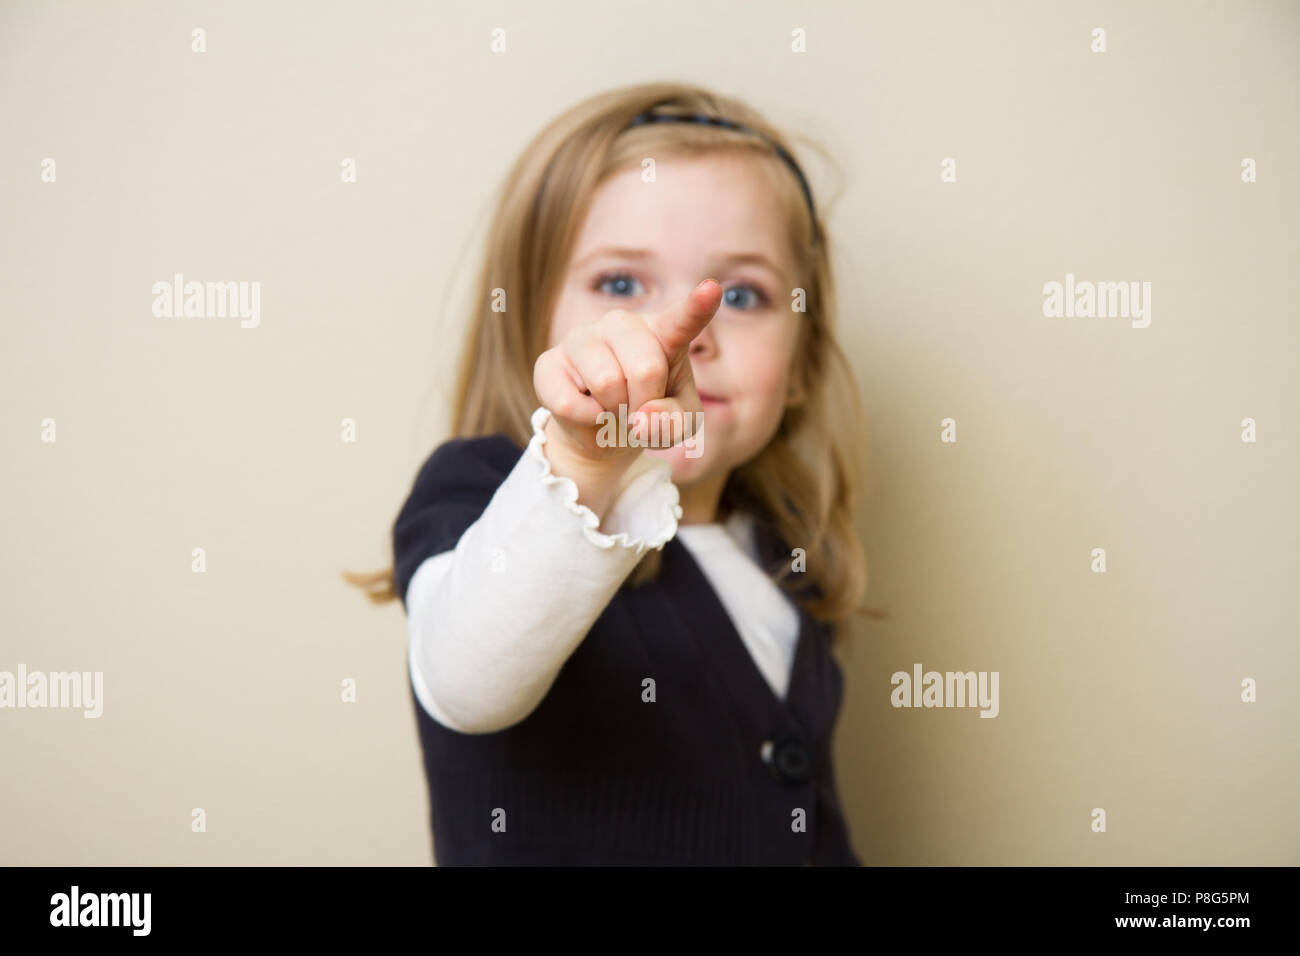 Young child holding her hand up pointing into the air. Focus is shallow and centered on the hand and finger of the child - Stock Image